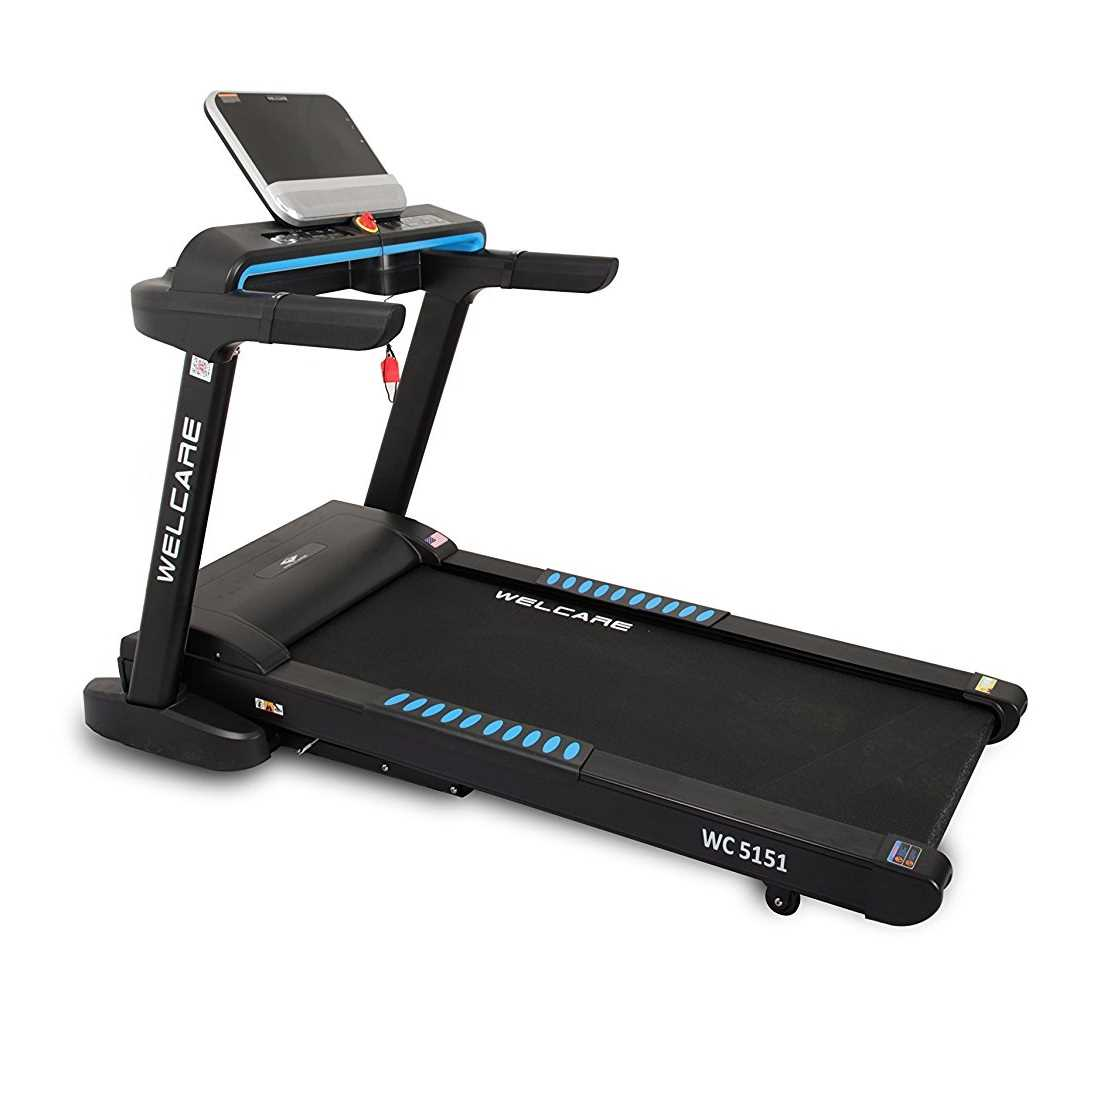 Welcare WC5151 Motorized Treadmill